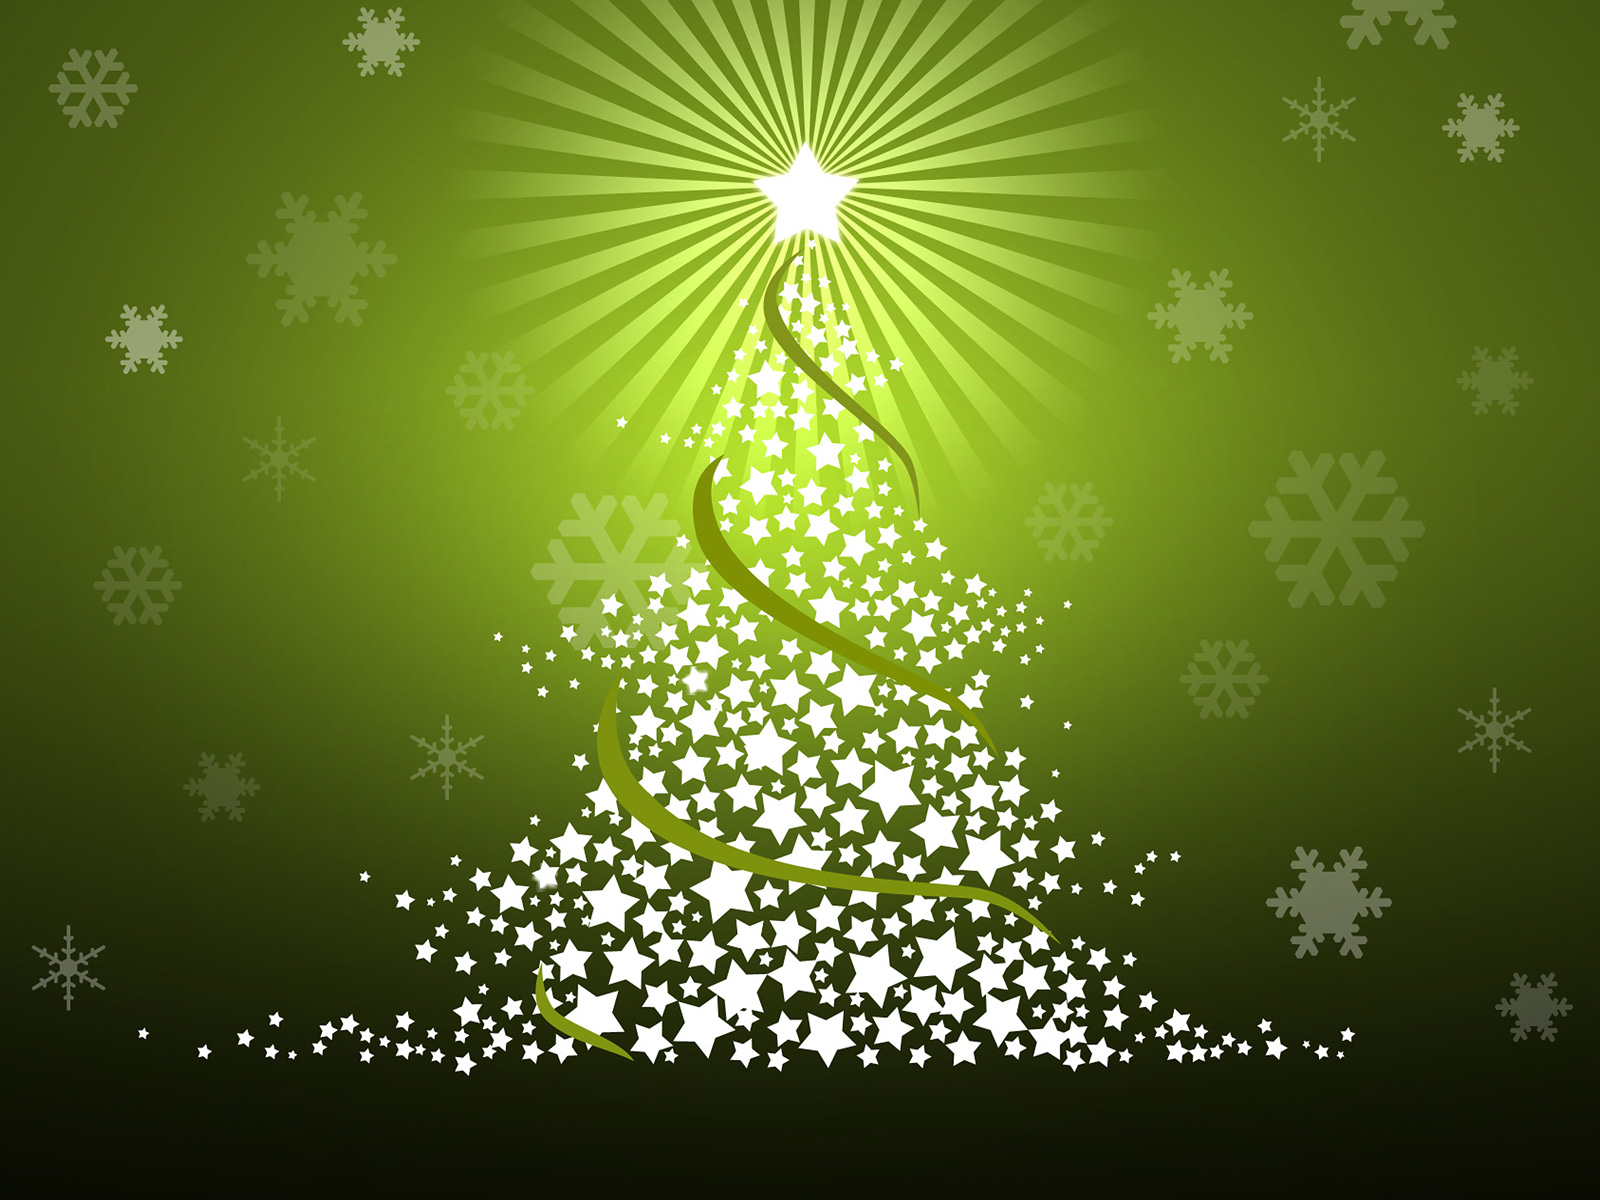 Have a sustainable Christmas